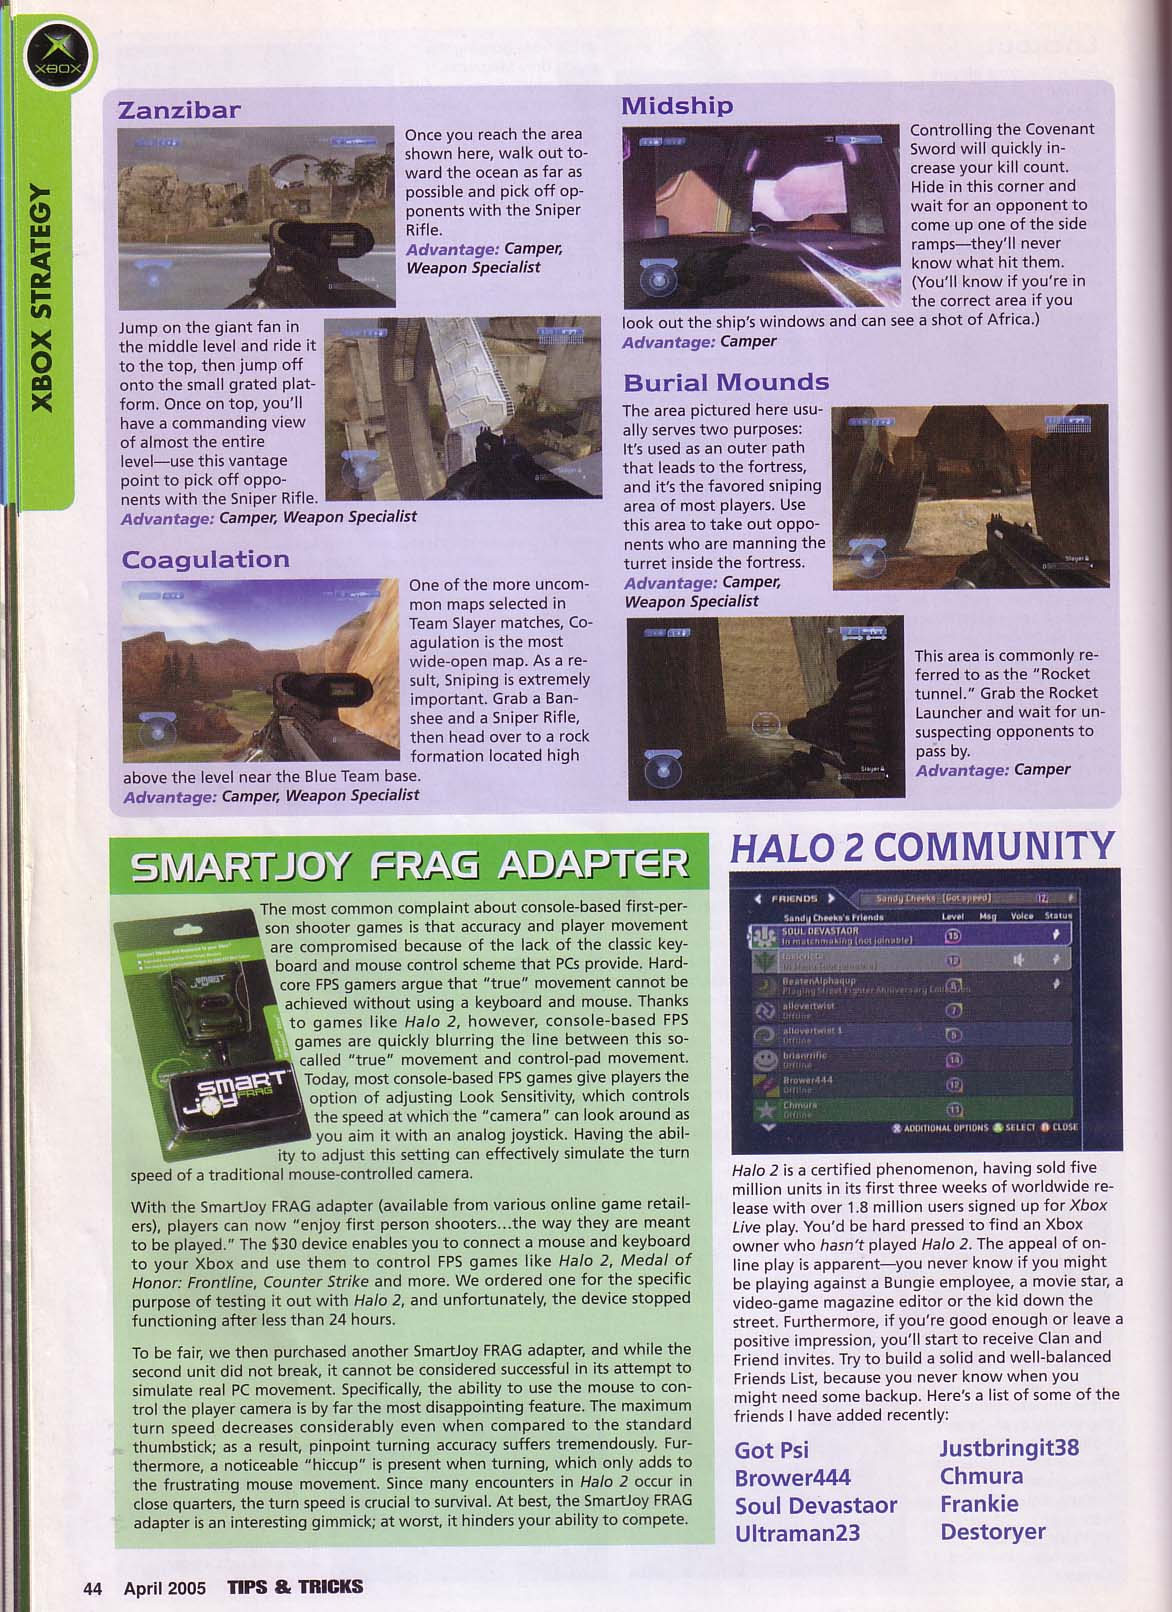 TipsandTricks_April_2005_Halo_pg3_Strategy.jpg